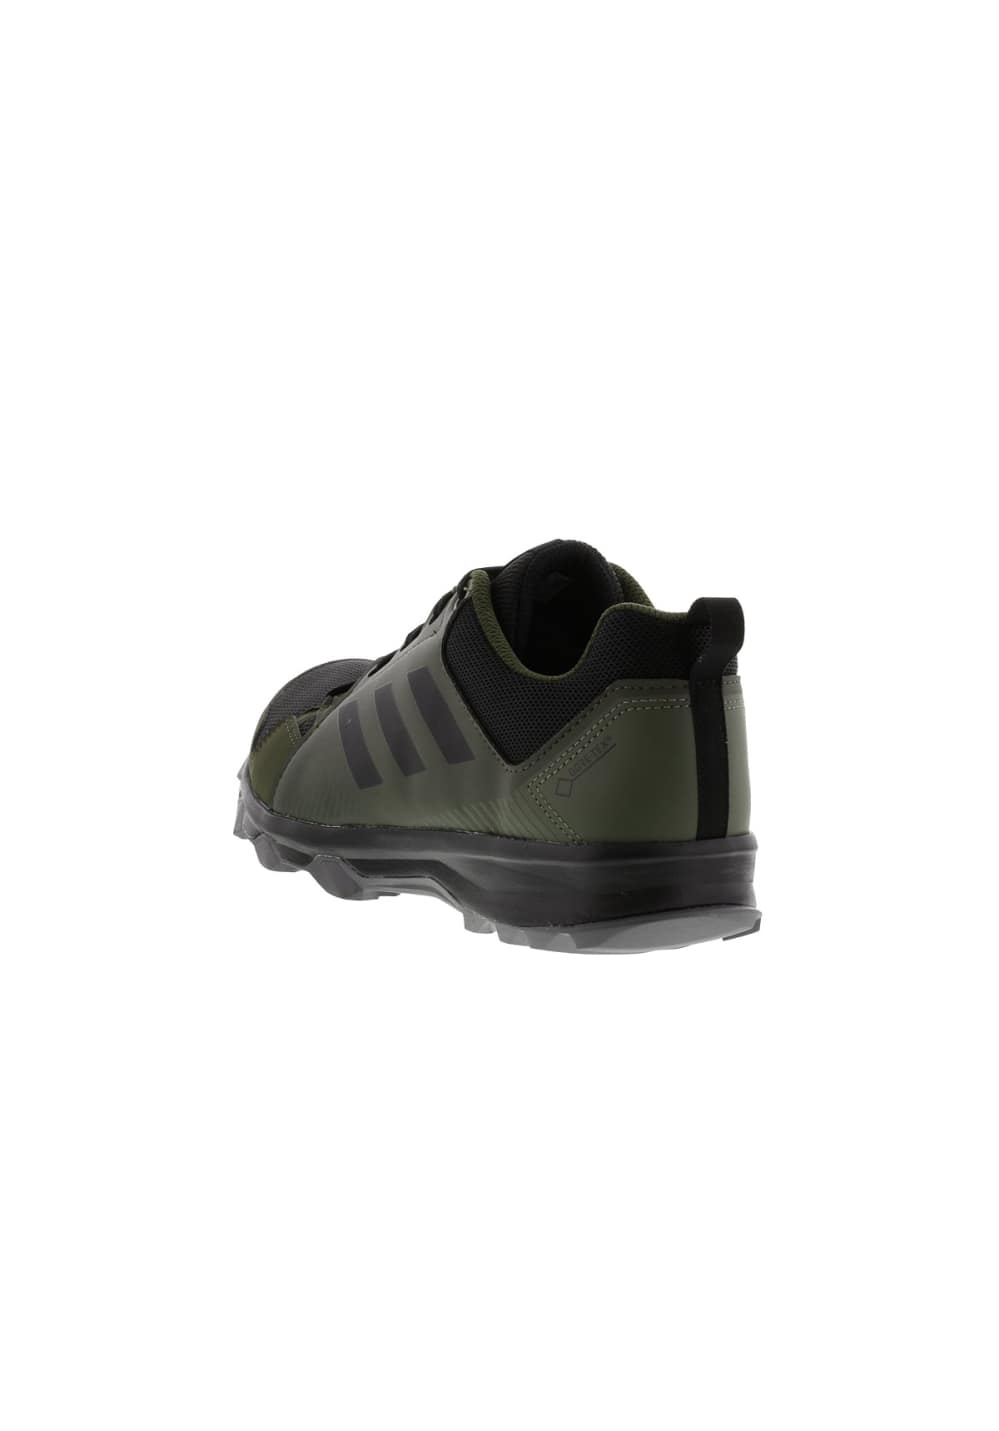 1a57bbd8bd3 adidas TERREX Terrex Tracerocker Gtx - Outdoor shoes for Men - Green ...